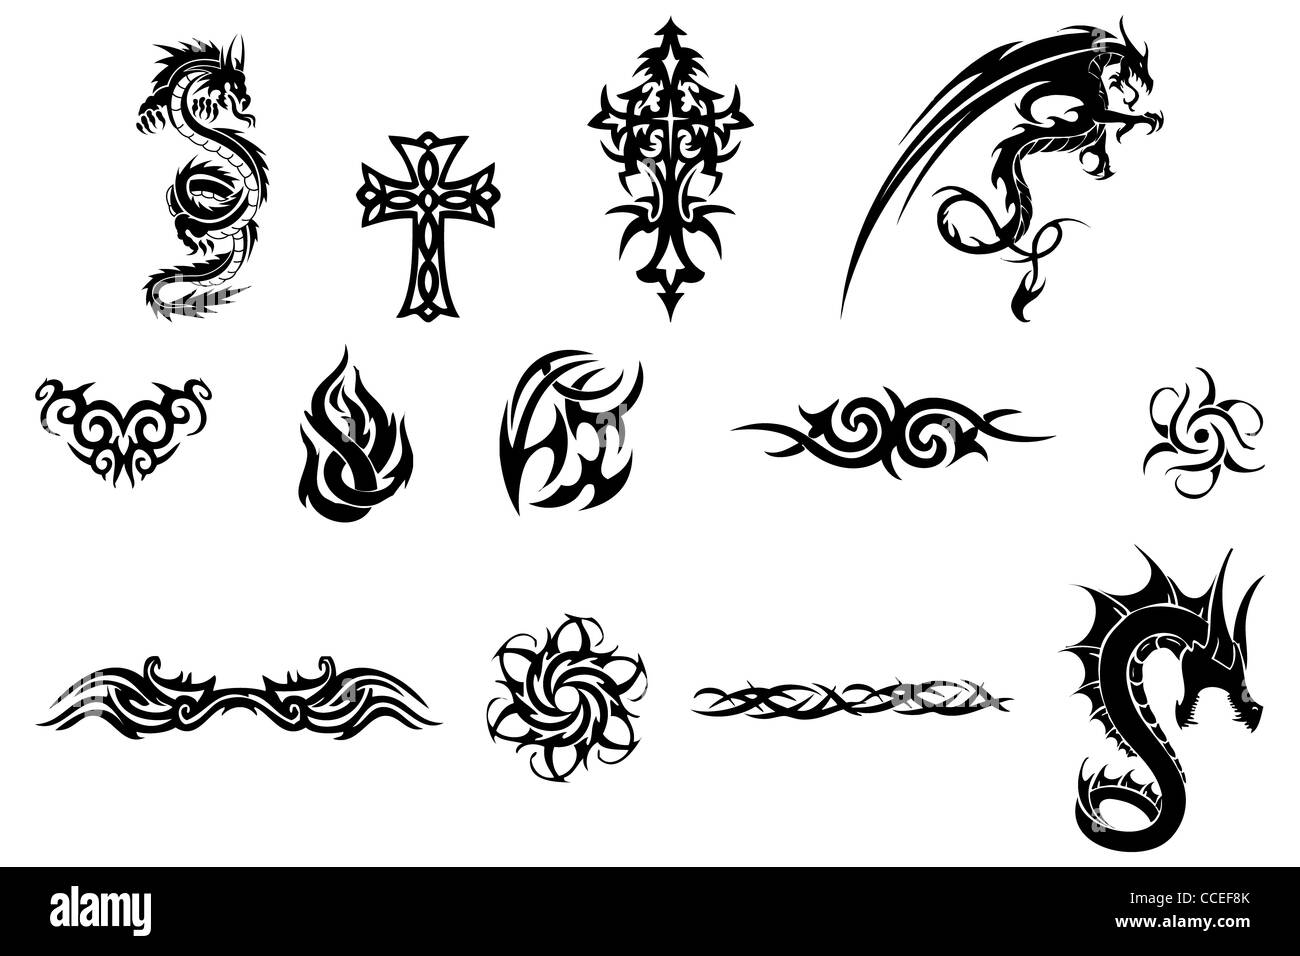 Tattoo Design Stock Photos & Tattoo Design Stock Images - Alamy